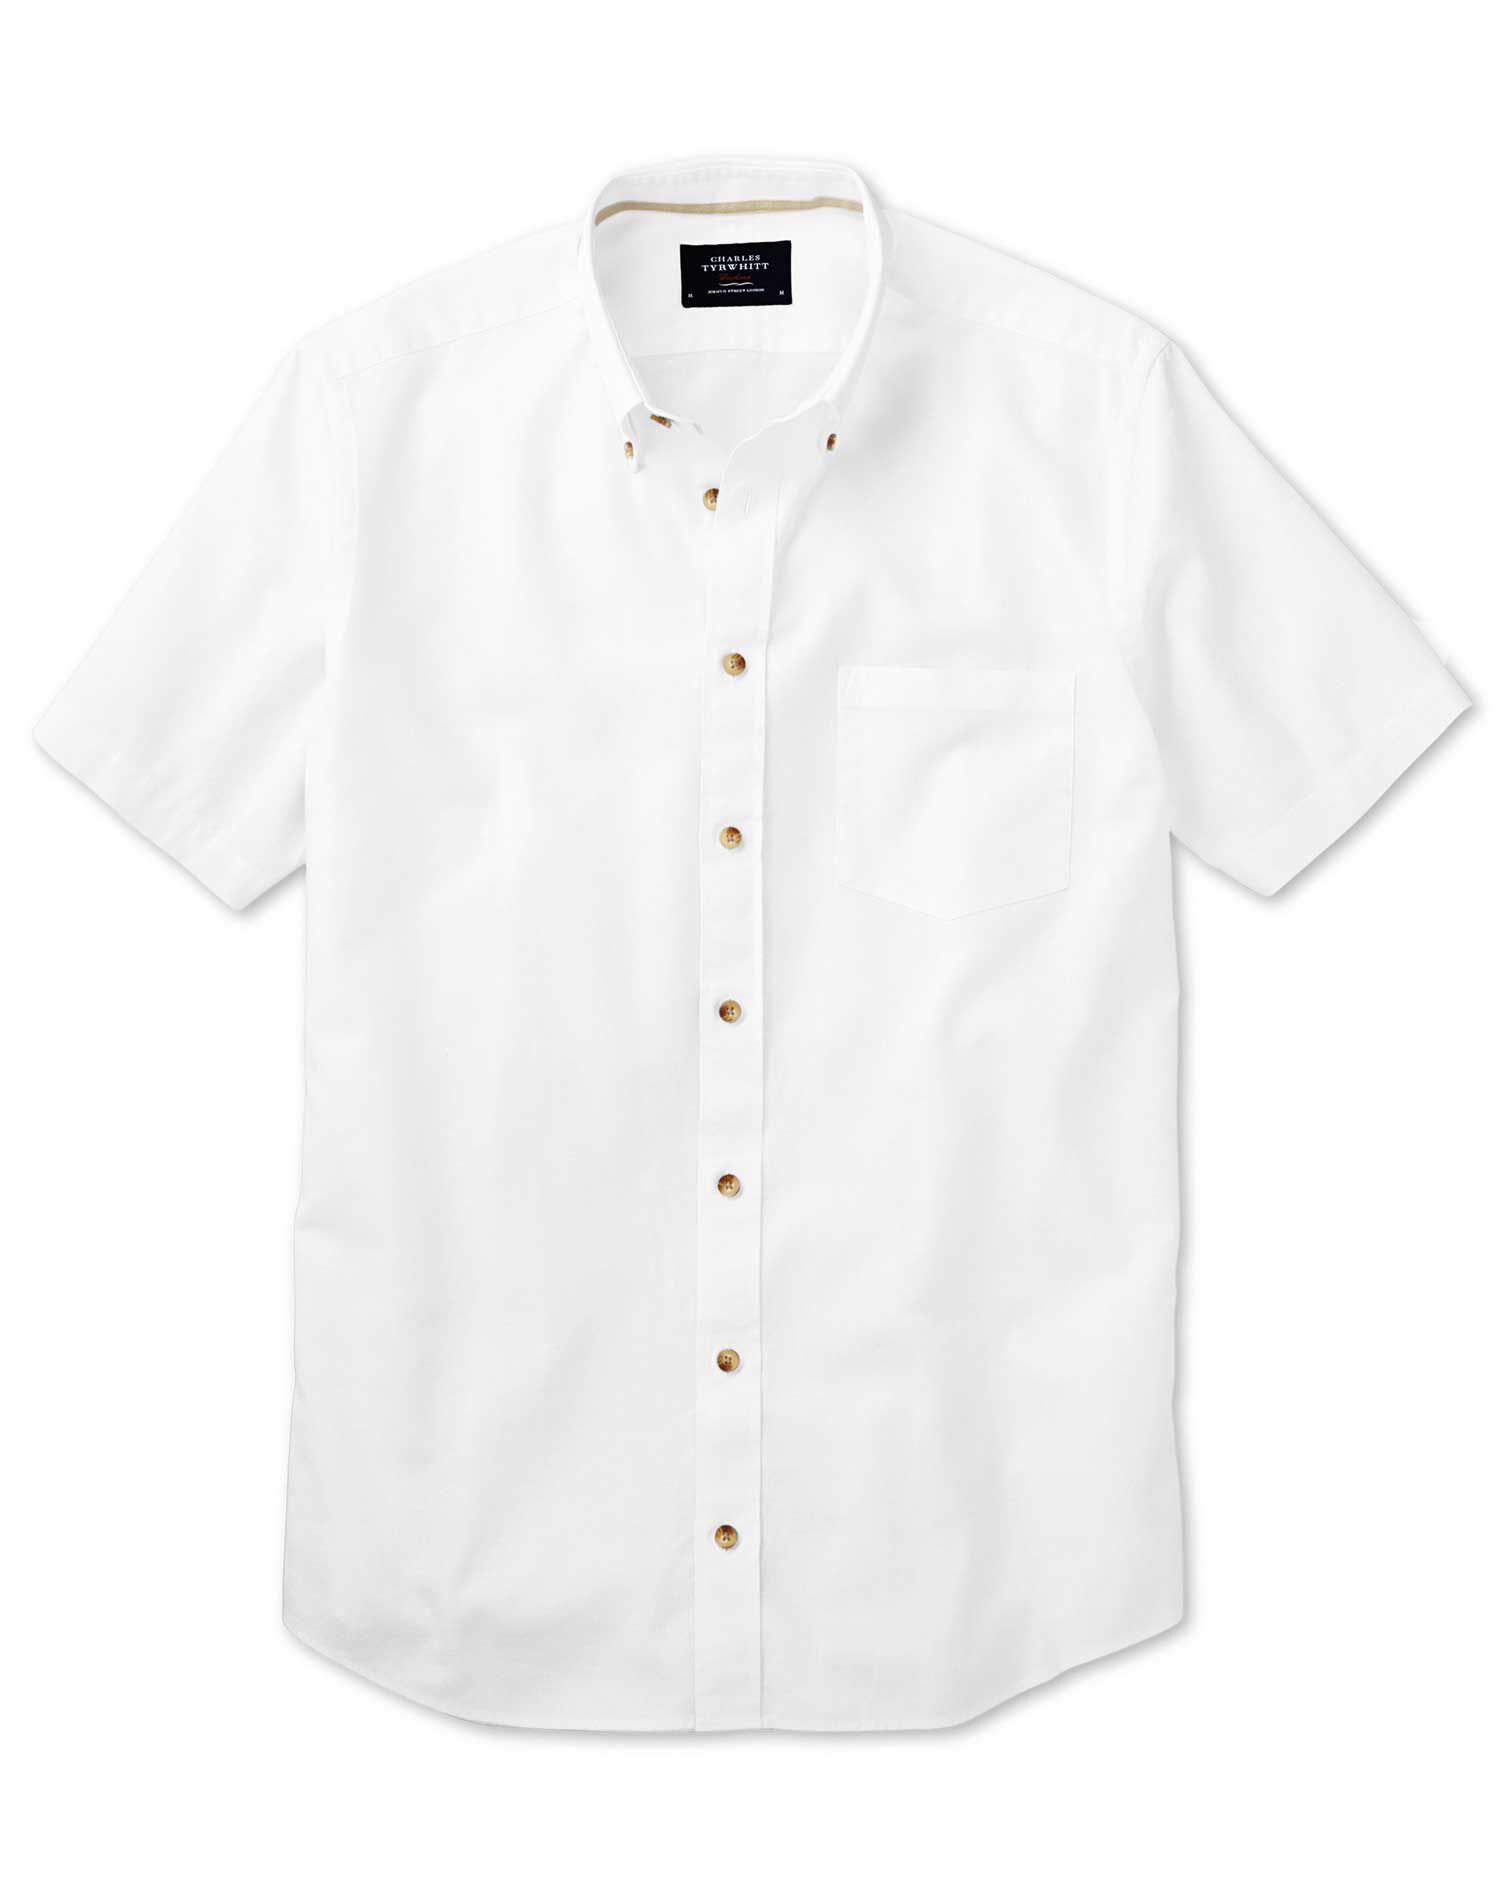 Slim Fit Short Sleeve White Cotton Shirt Single Cuff Size Small by Charles Tyrwhitt